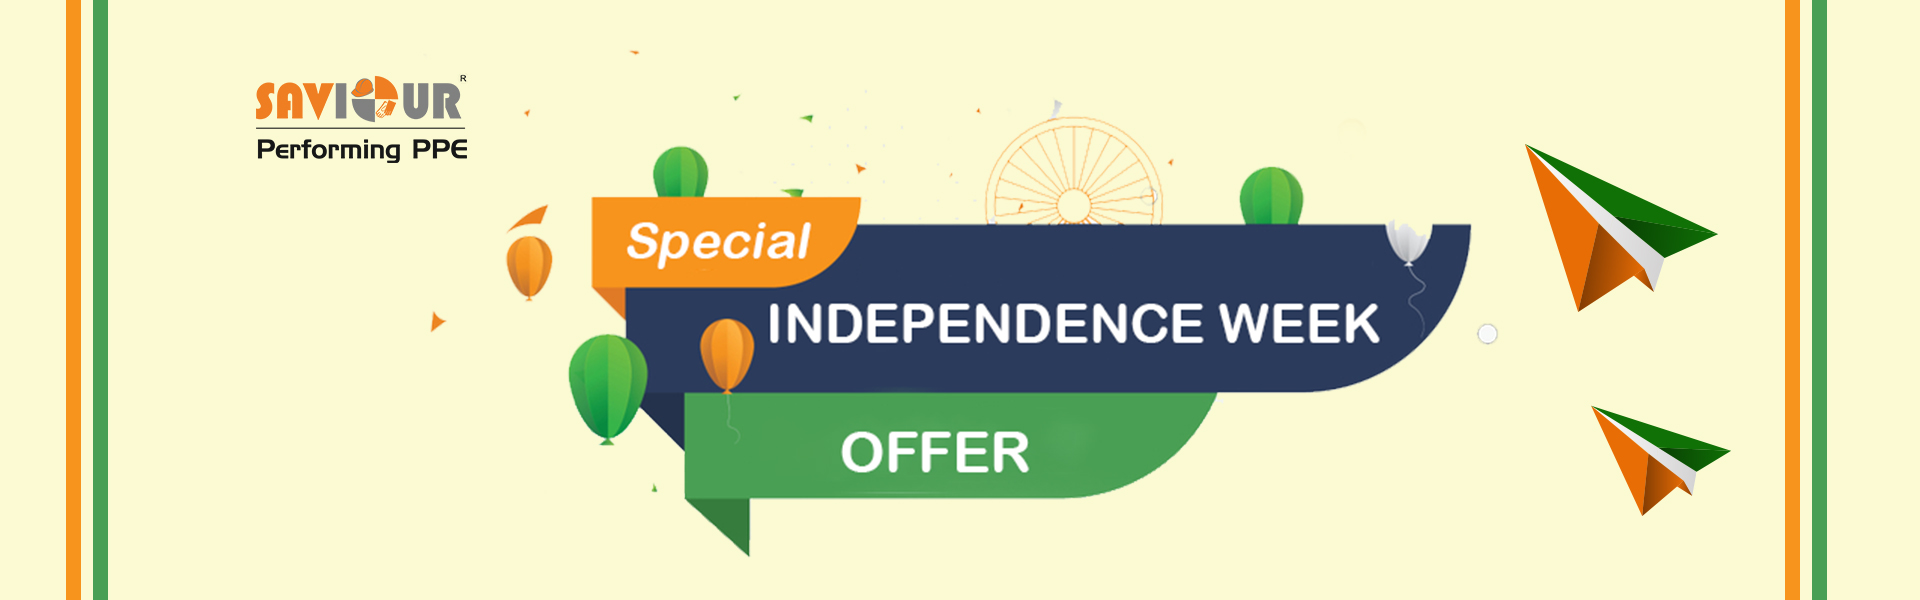 Special Independance week offer